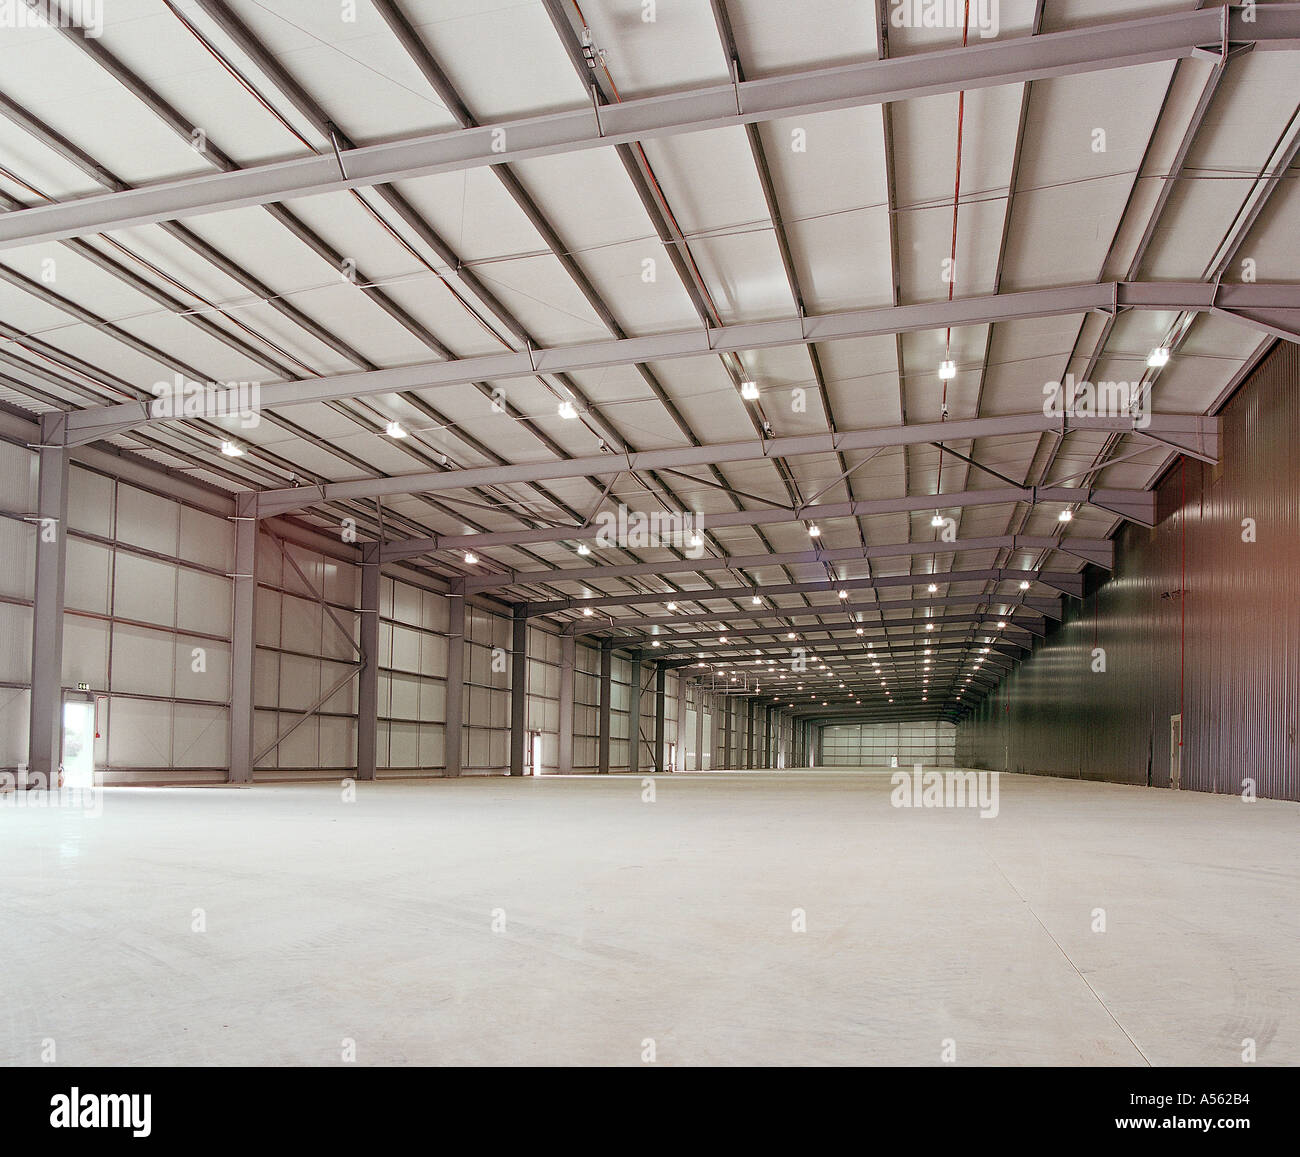 LARGE EMPTY WAREHOUSE READY FOR OCCUPATION UK - Stock Image